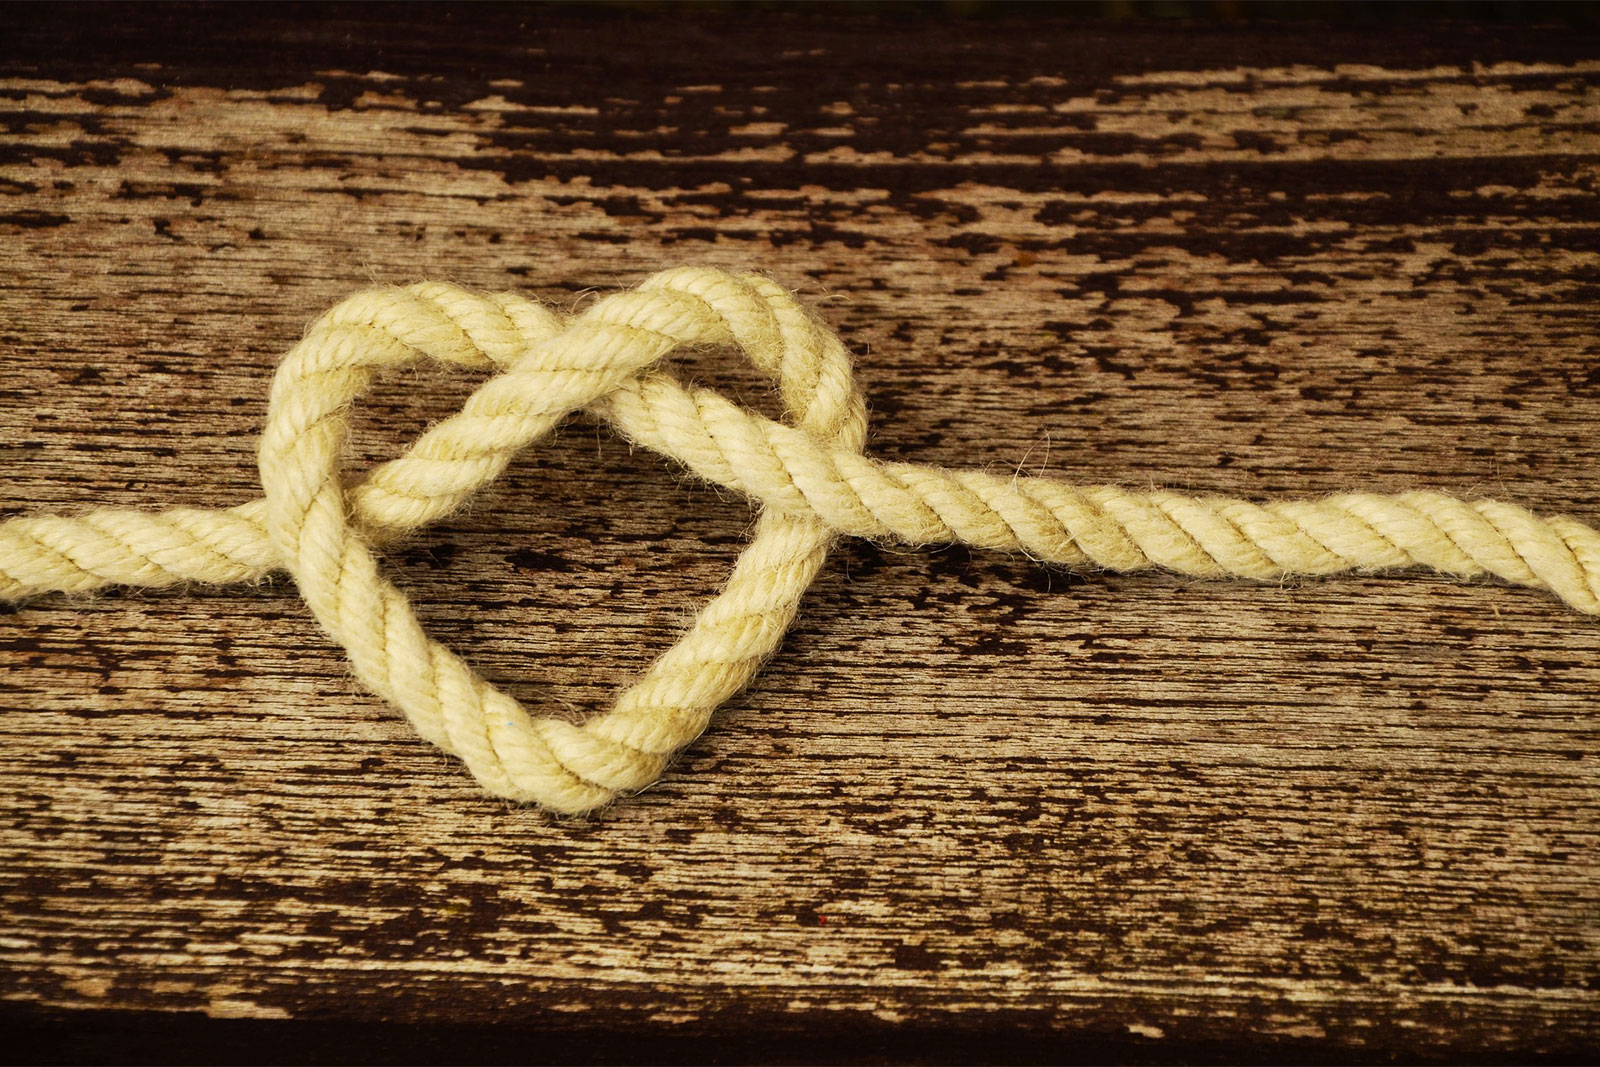 Heart Rope Tied Together